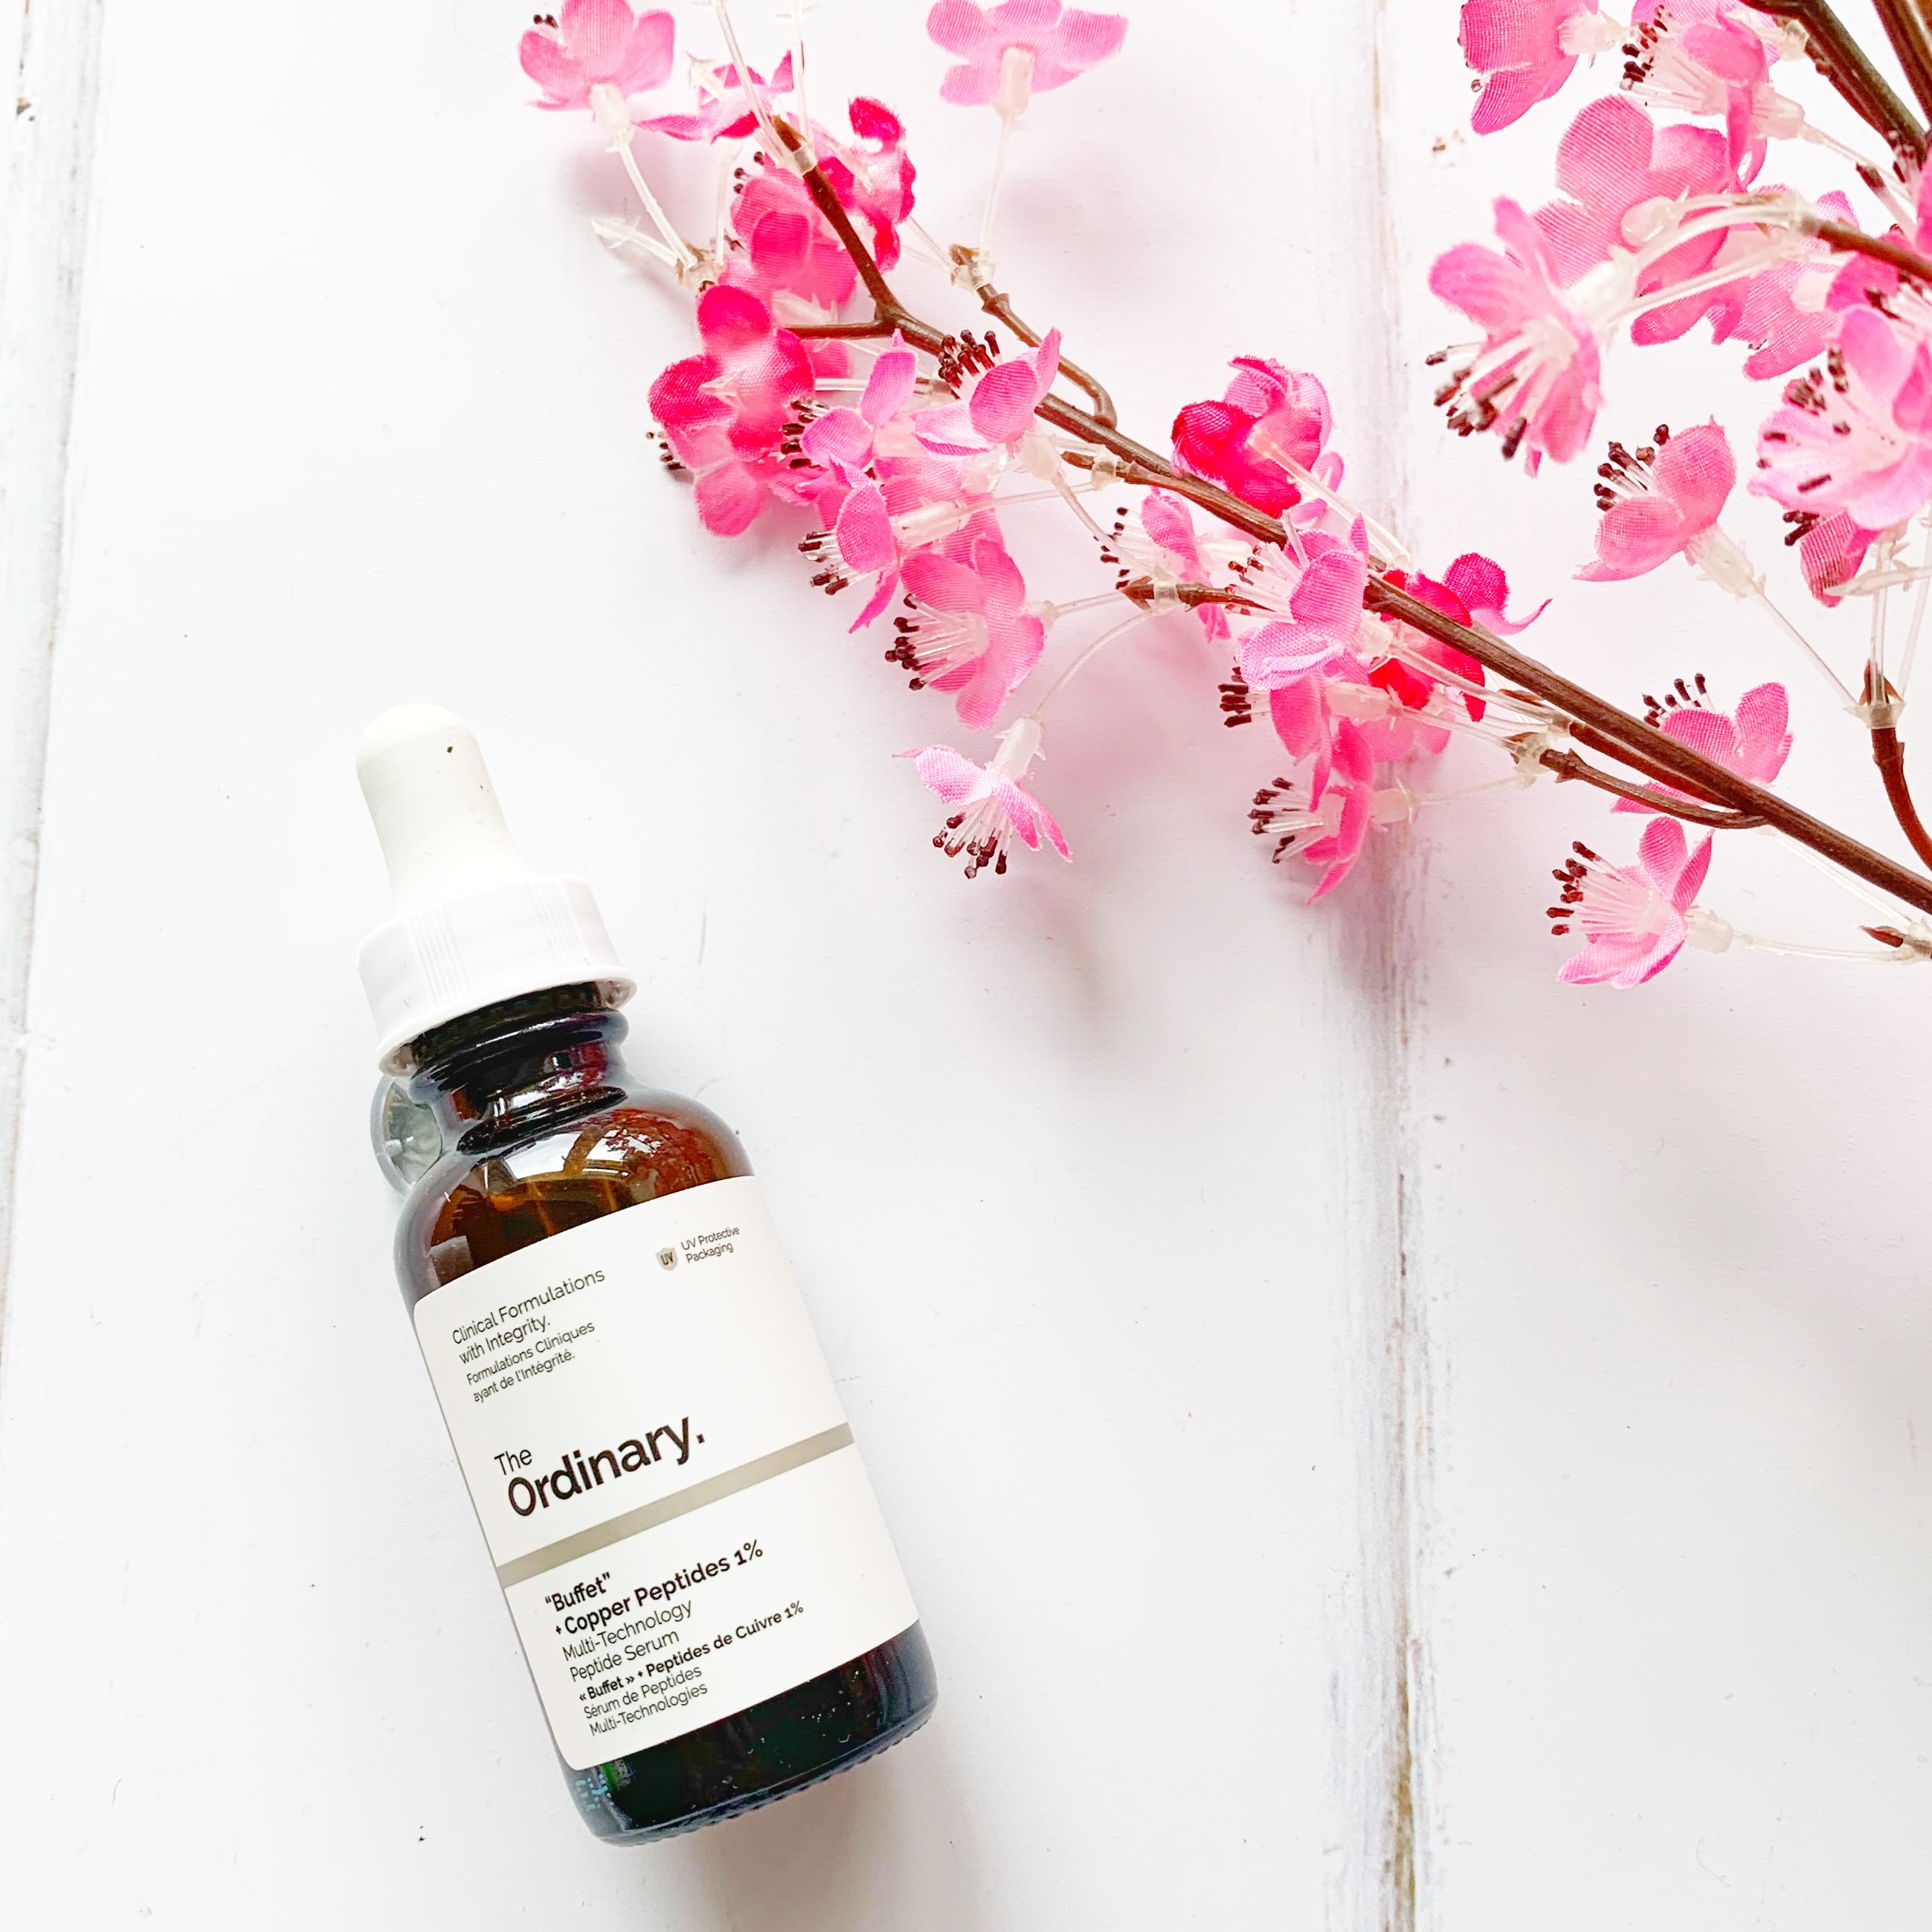 The Ordinary Buffet with Copper Peptides